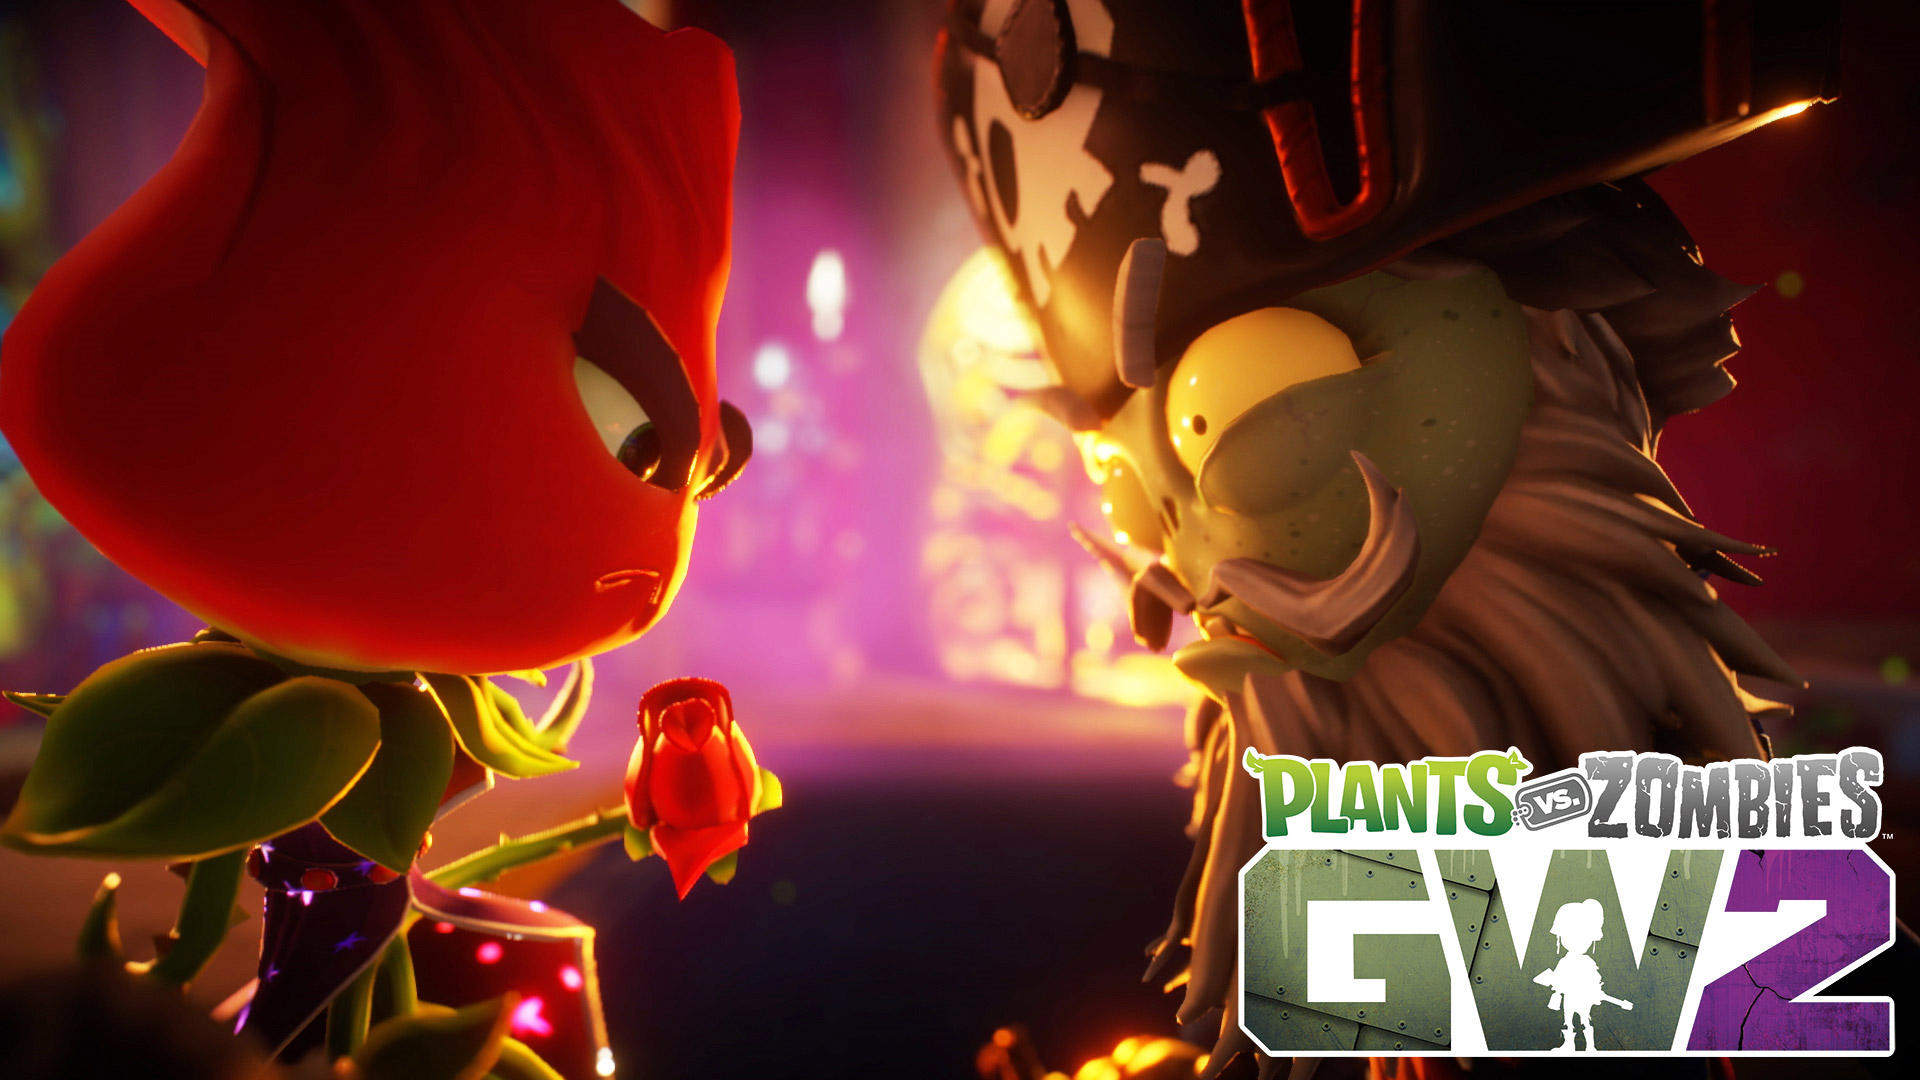 Plants Vs Zombies Garden Warfare 2 Beta Trailer